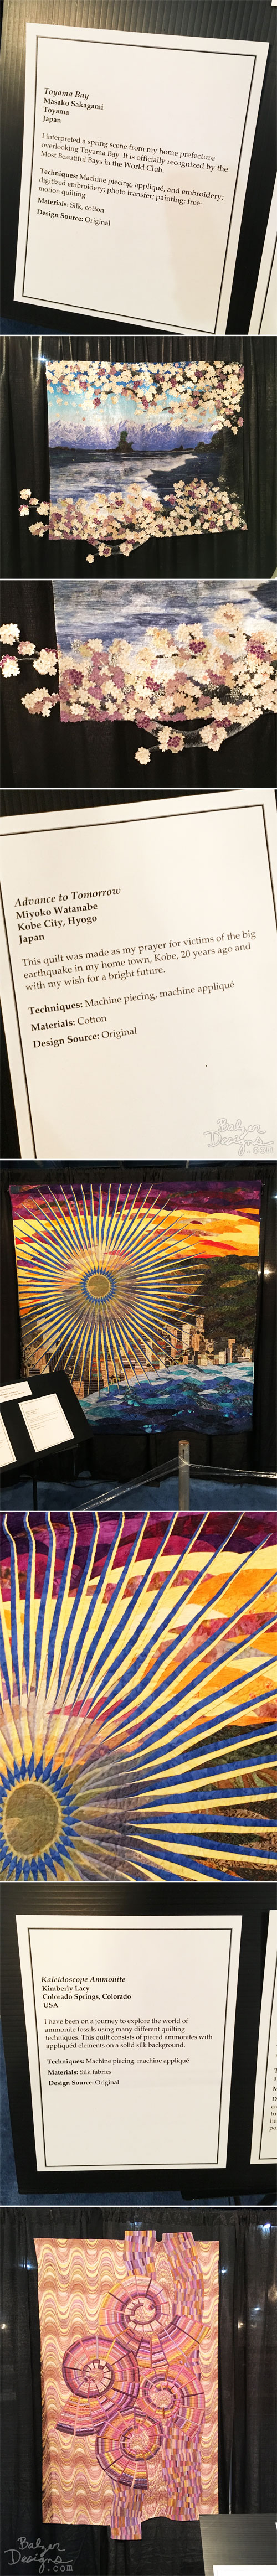 From the Balzer Designs Blog: Quilt Festival 2017: Part Four